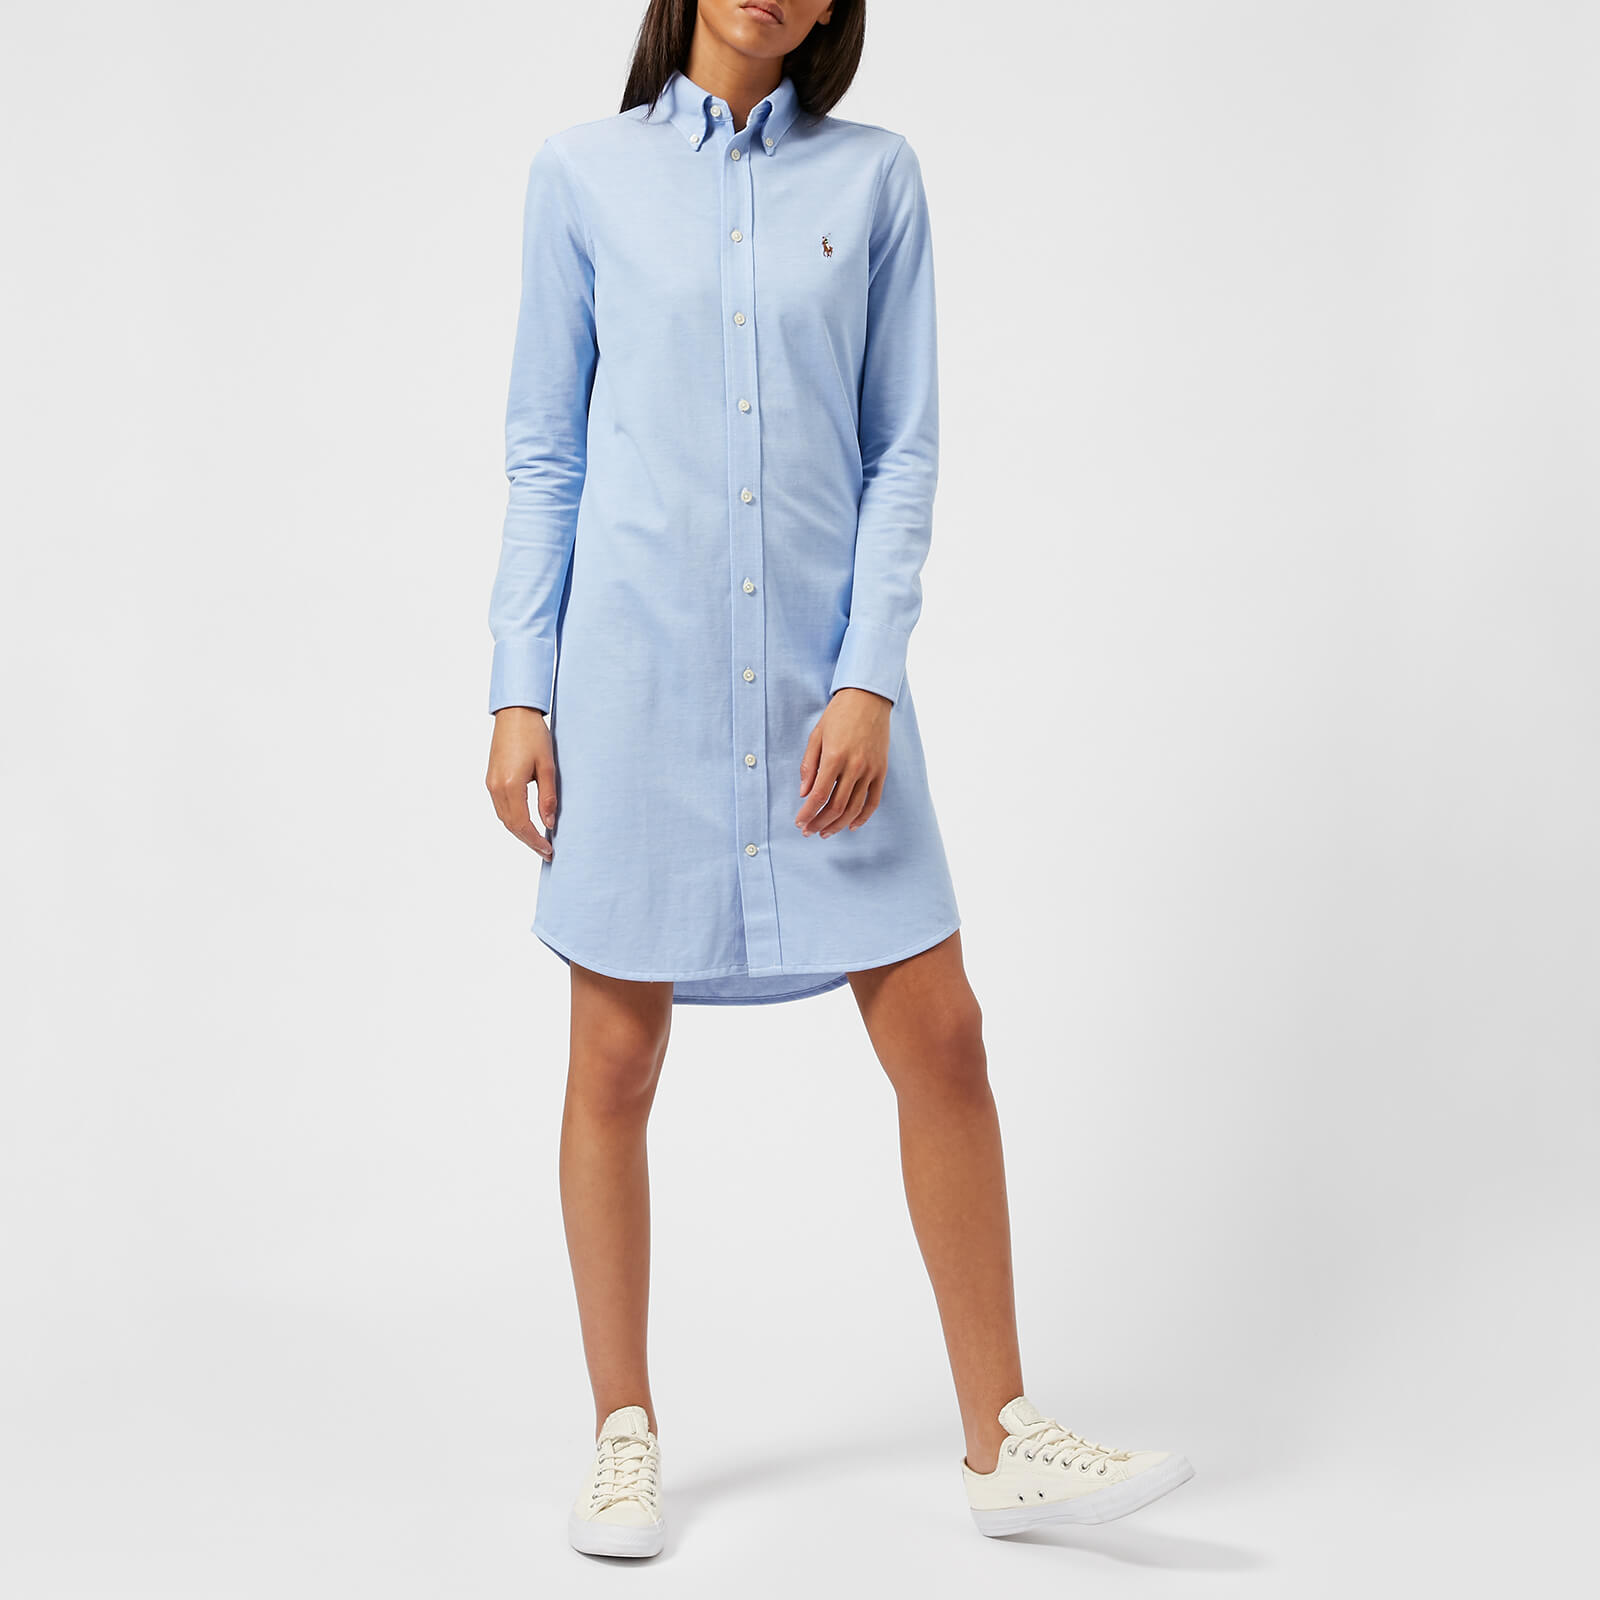 ac9e6d0b205 Polo Ralph Lauren Women s Oxford Shirt Dress - Blue - Free UK Delivery over  £50